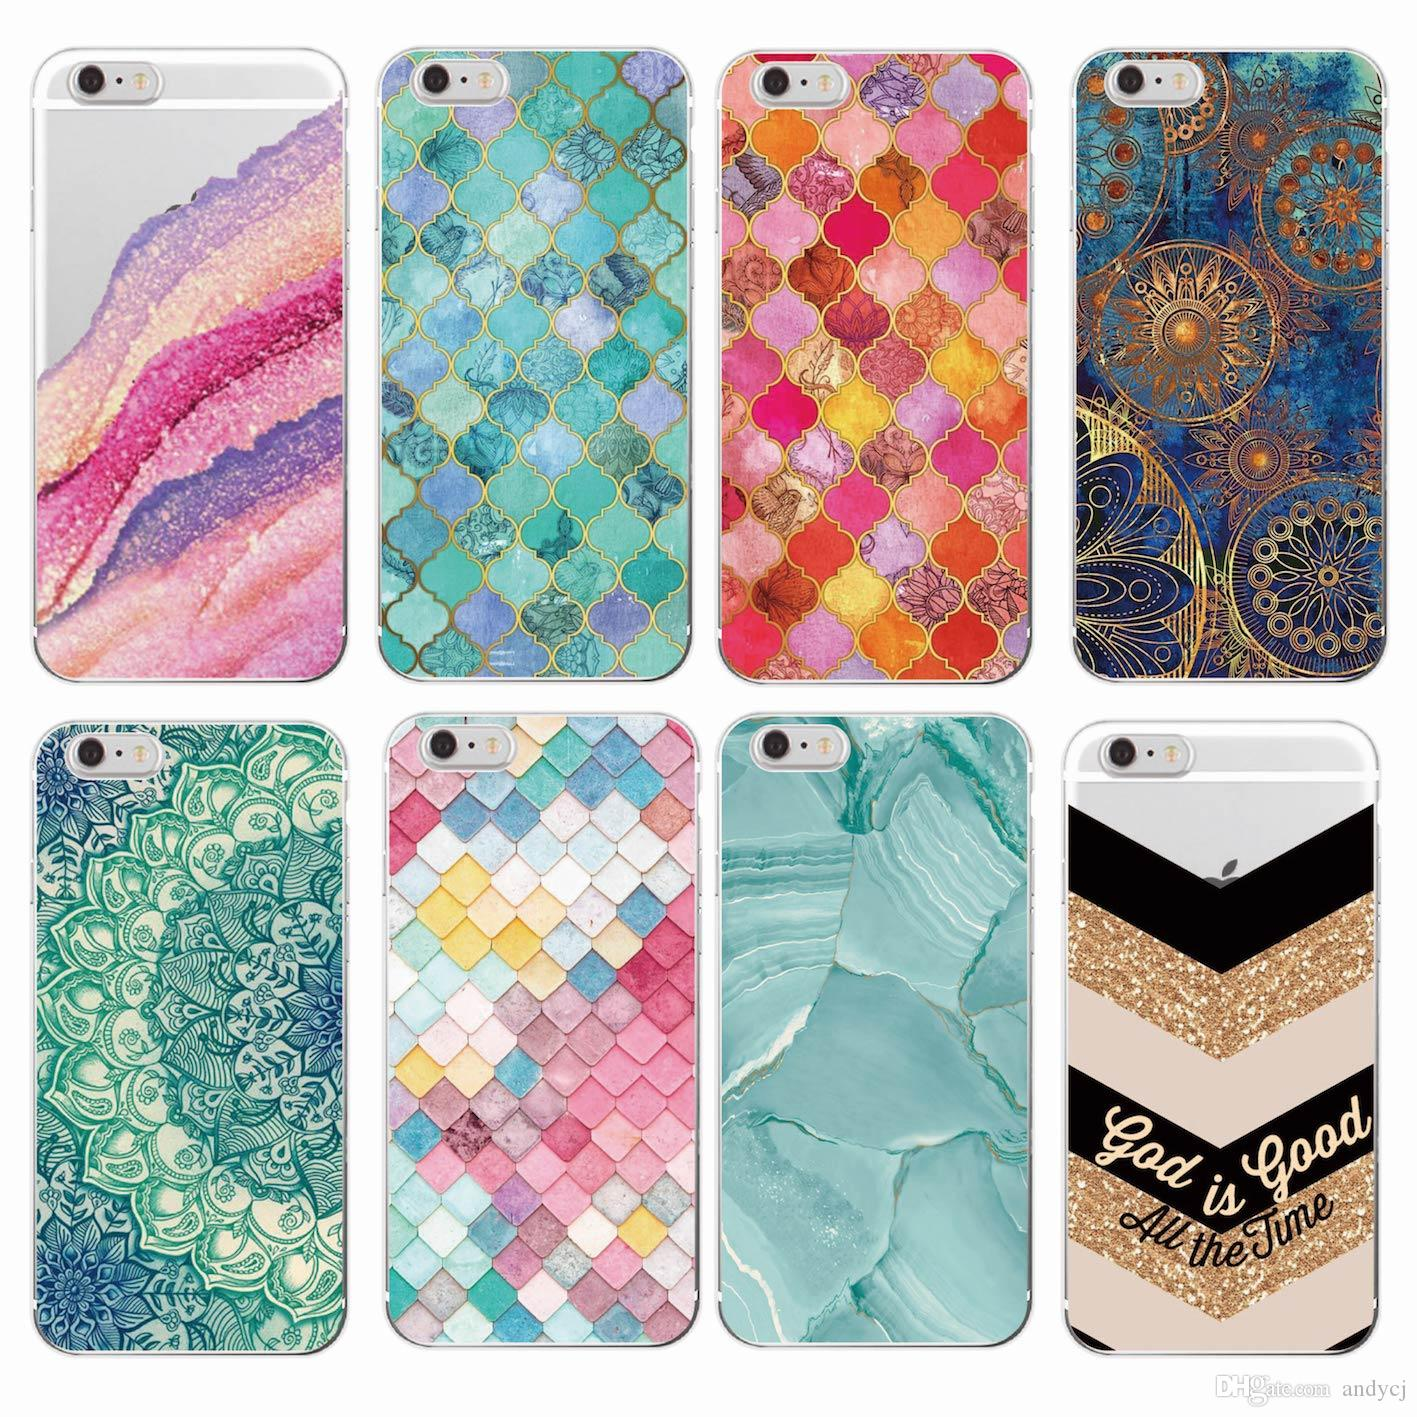 Marble Moroccan Pattern Circular Stars Golden Texture Mermaid Soft Phone Case For iPhone 7Plus 7 6 6S 6Plus 5 8 8Plus X SAMSUNG